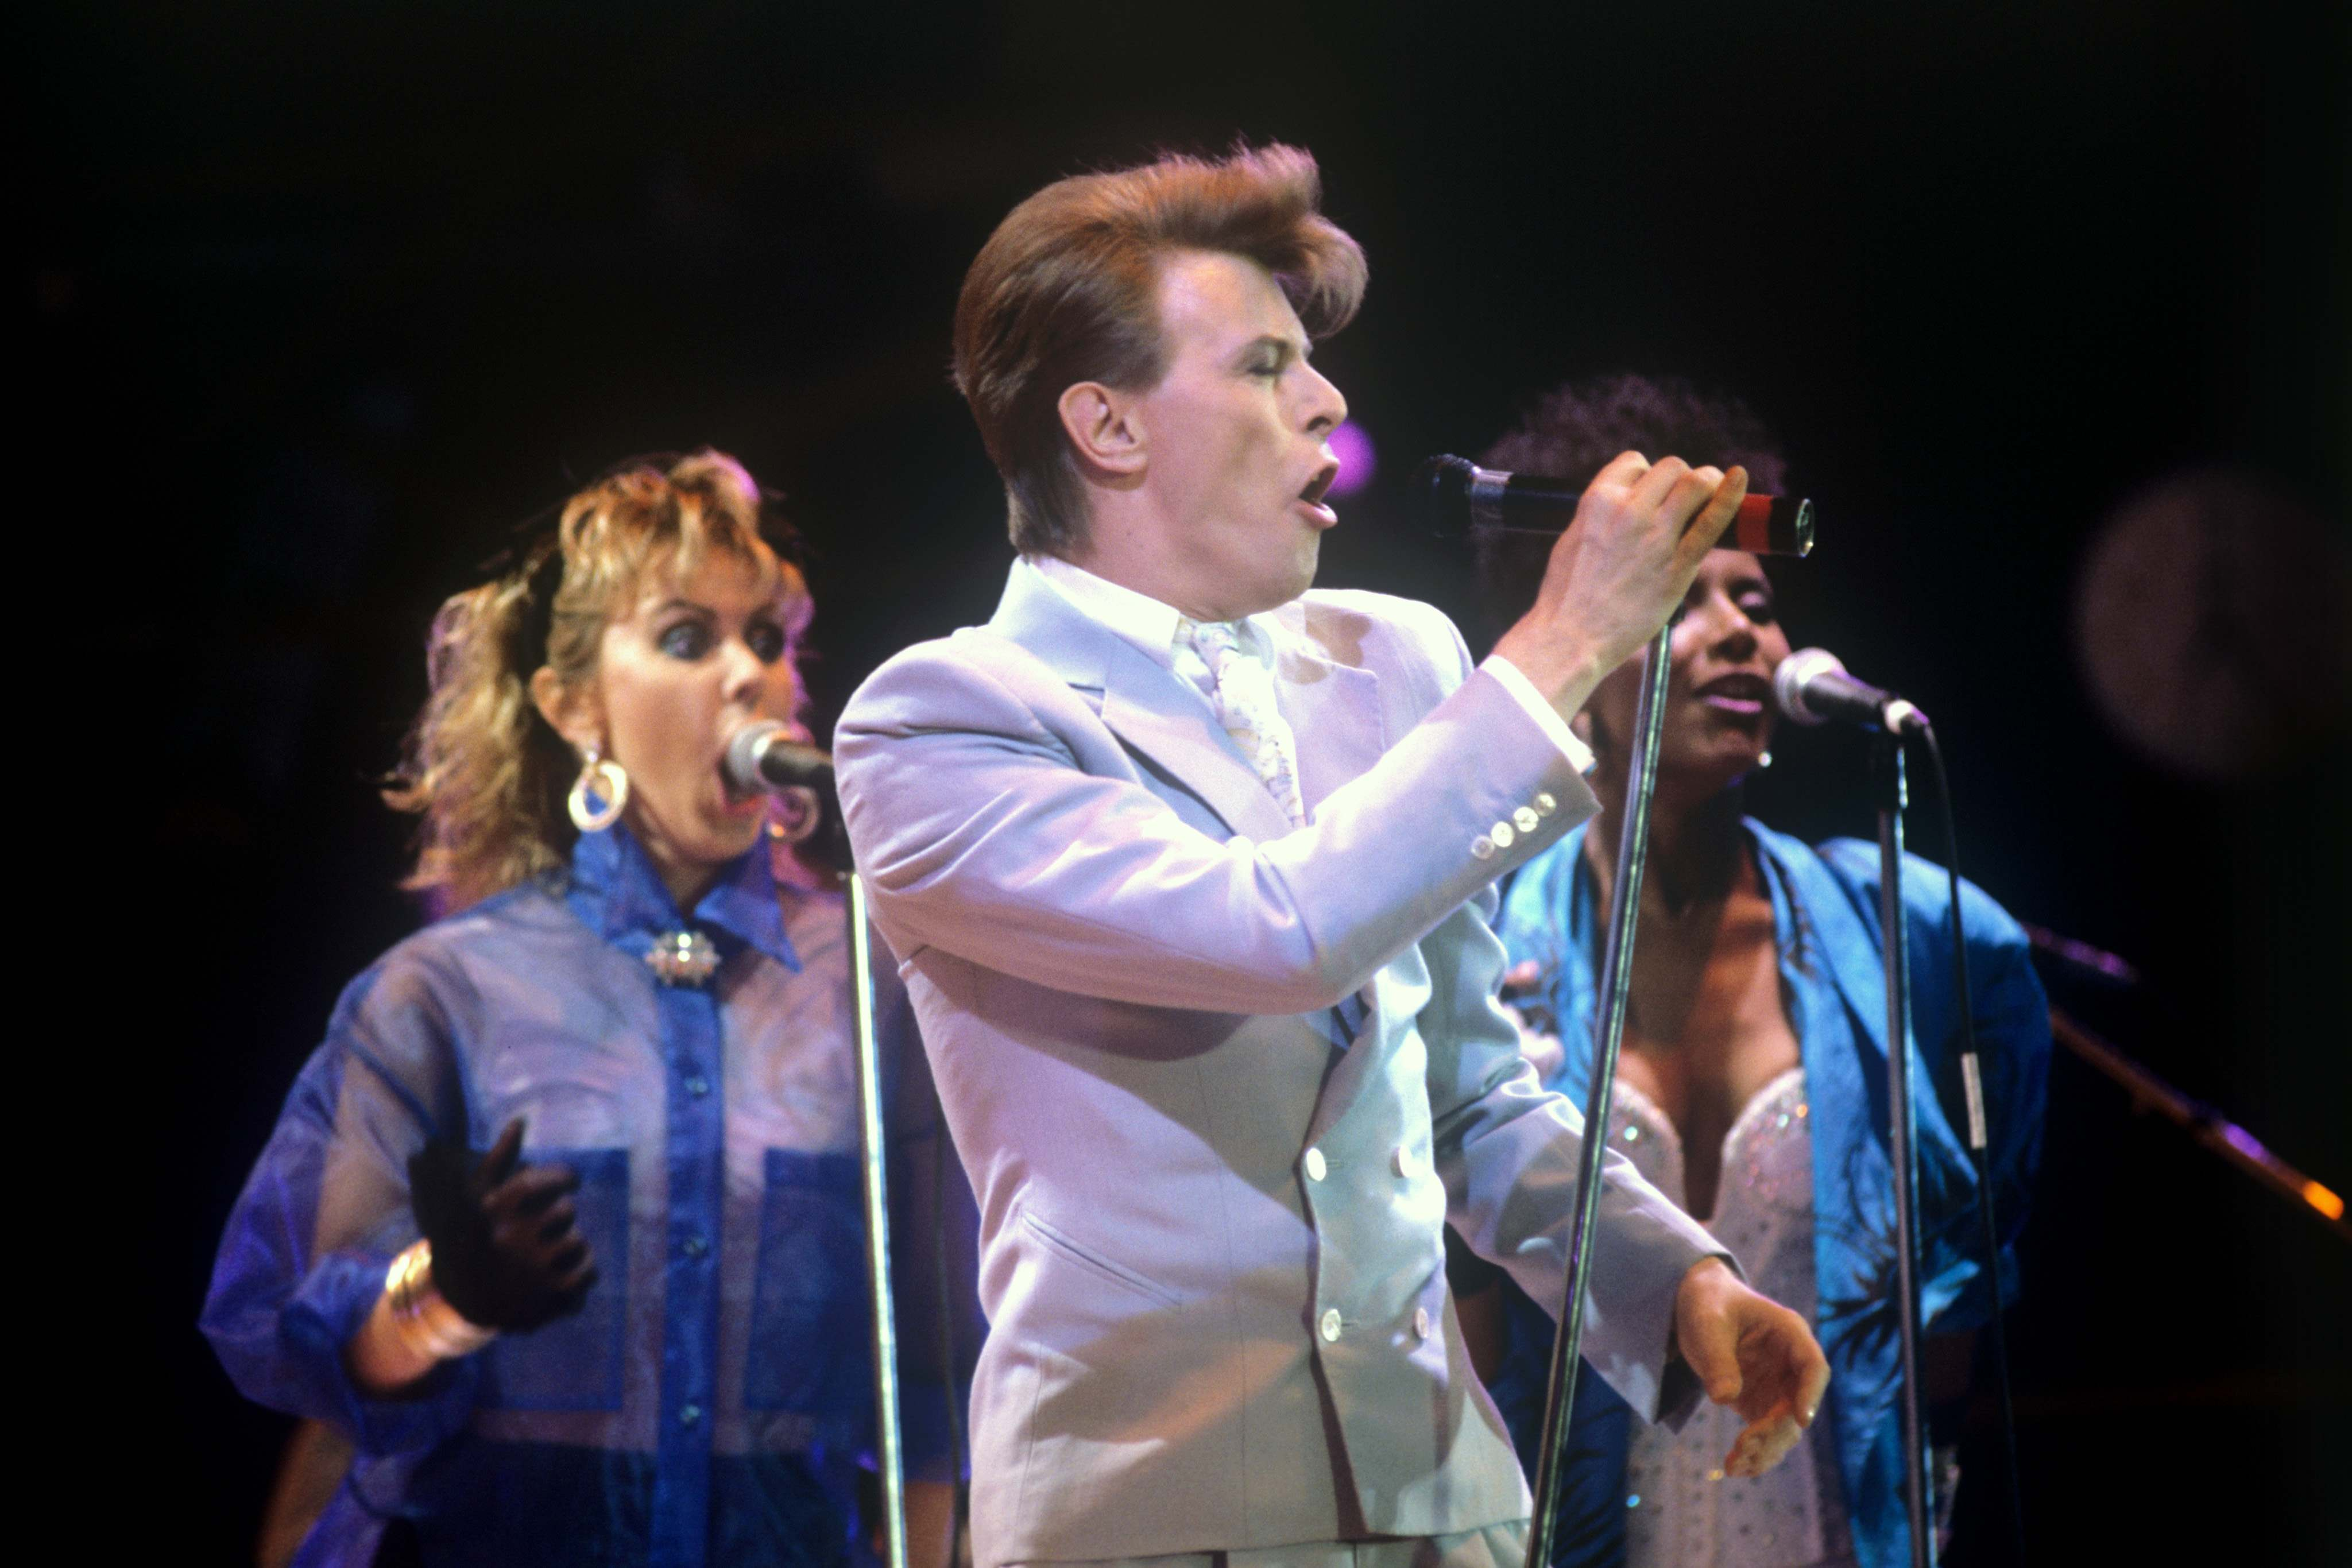 David Bowie - Heroes (Live Aid 1985) - YouTube |David Bowie 1985